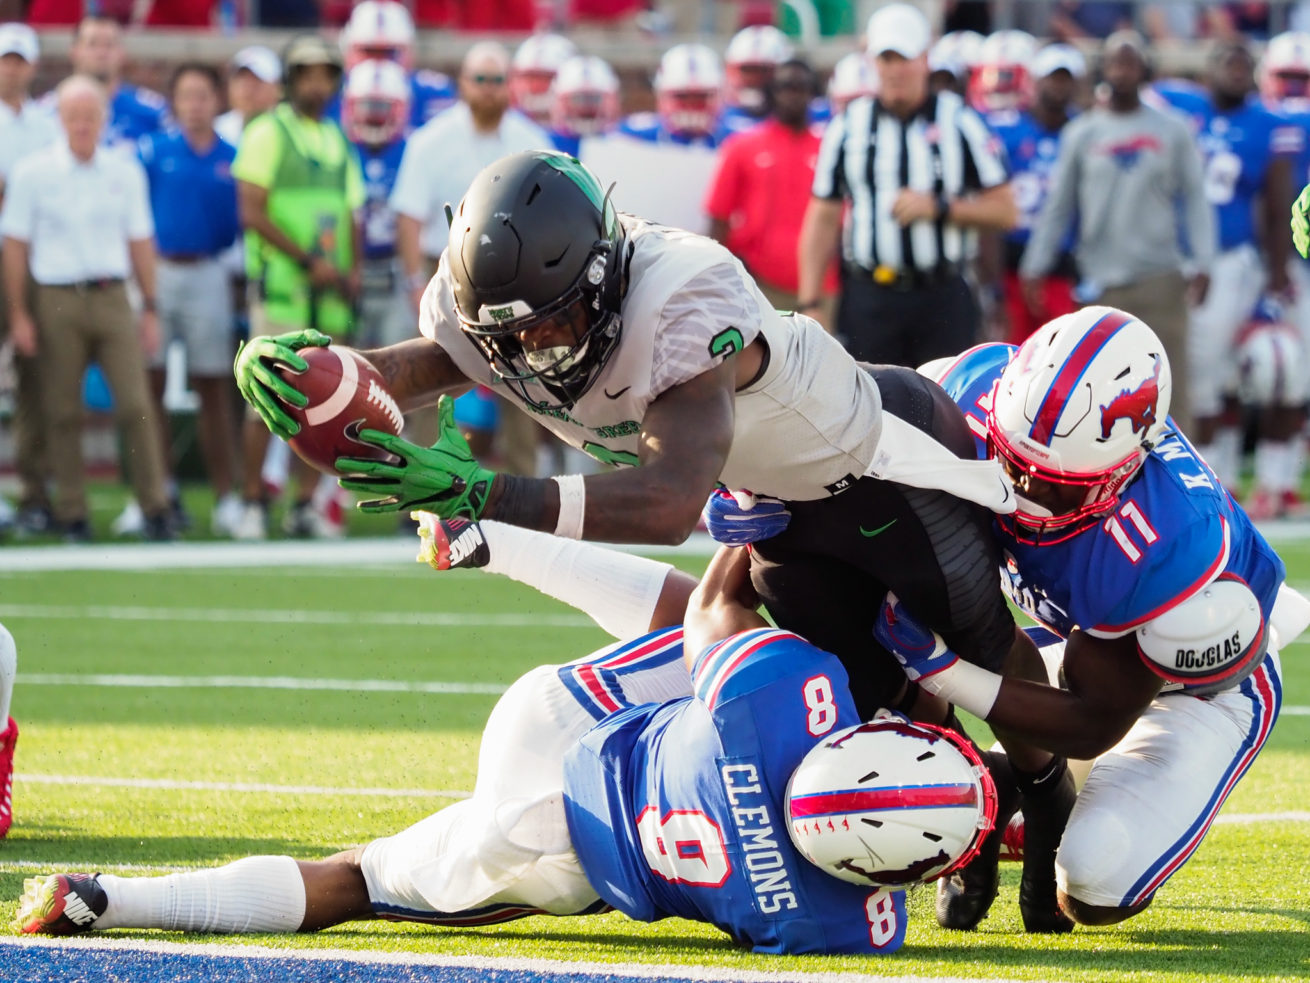 North Texas senior running back Jeffery Wilson (3) lunges to the goal line and scores a touchdown, while being defended by Southern Methodist defensive back Rodney Clemons (8) and Southern Methodist linebacker Kyran Mitchell (11) at Gerald J. Ford Stadium